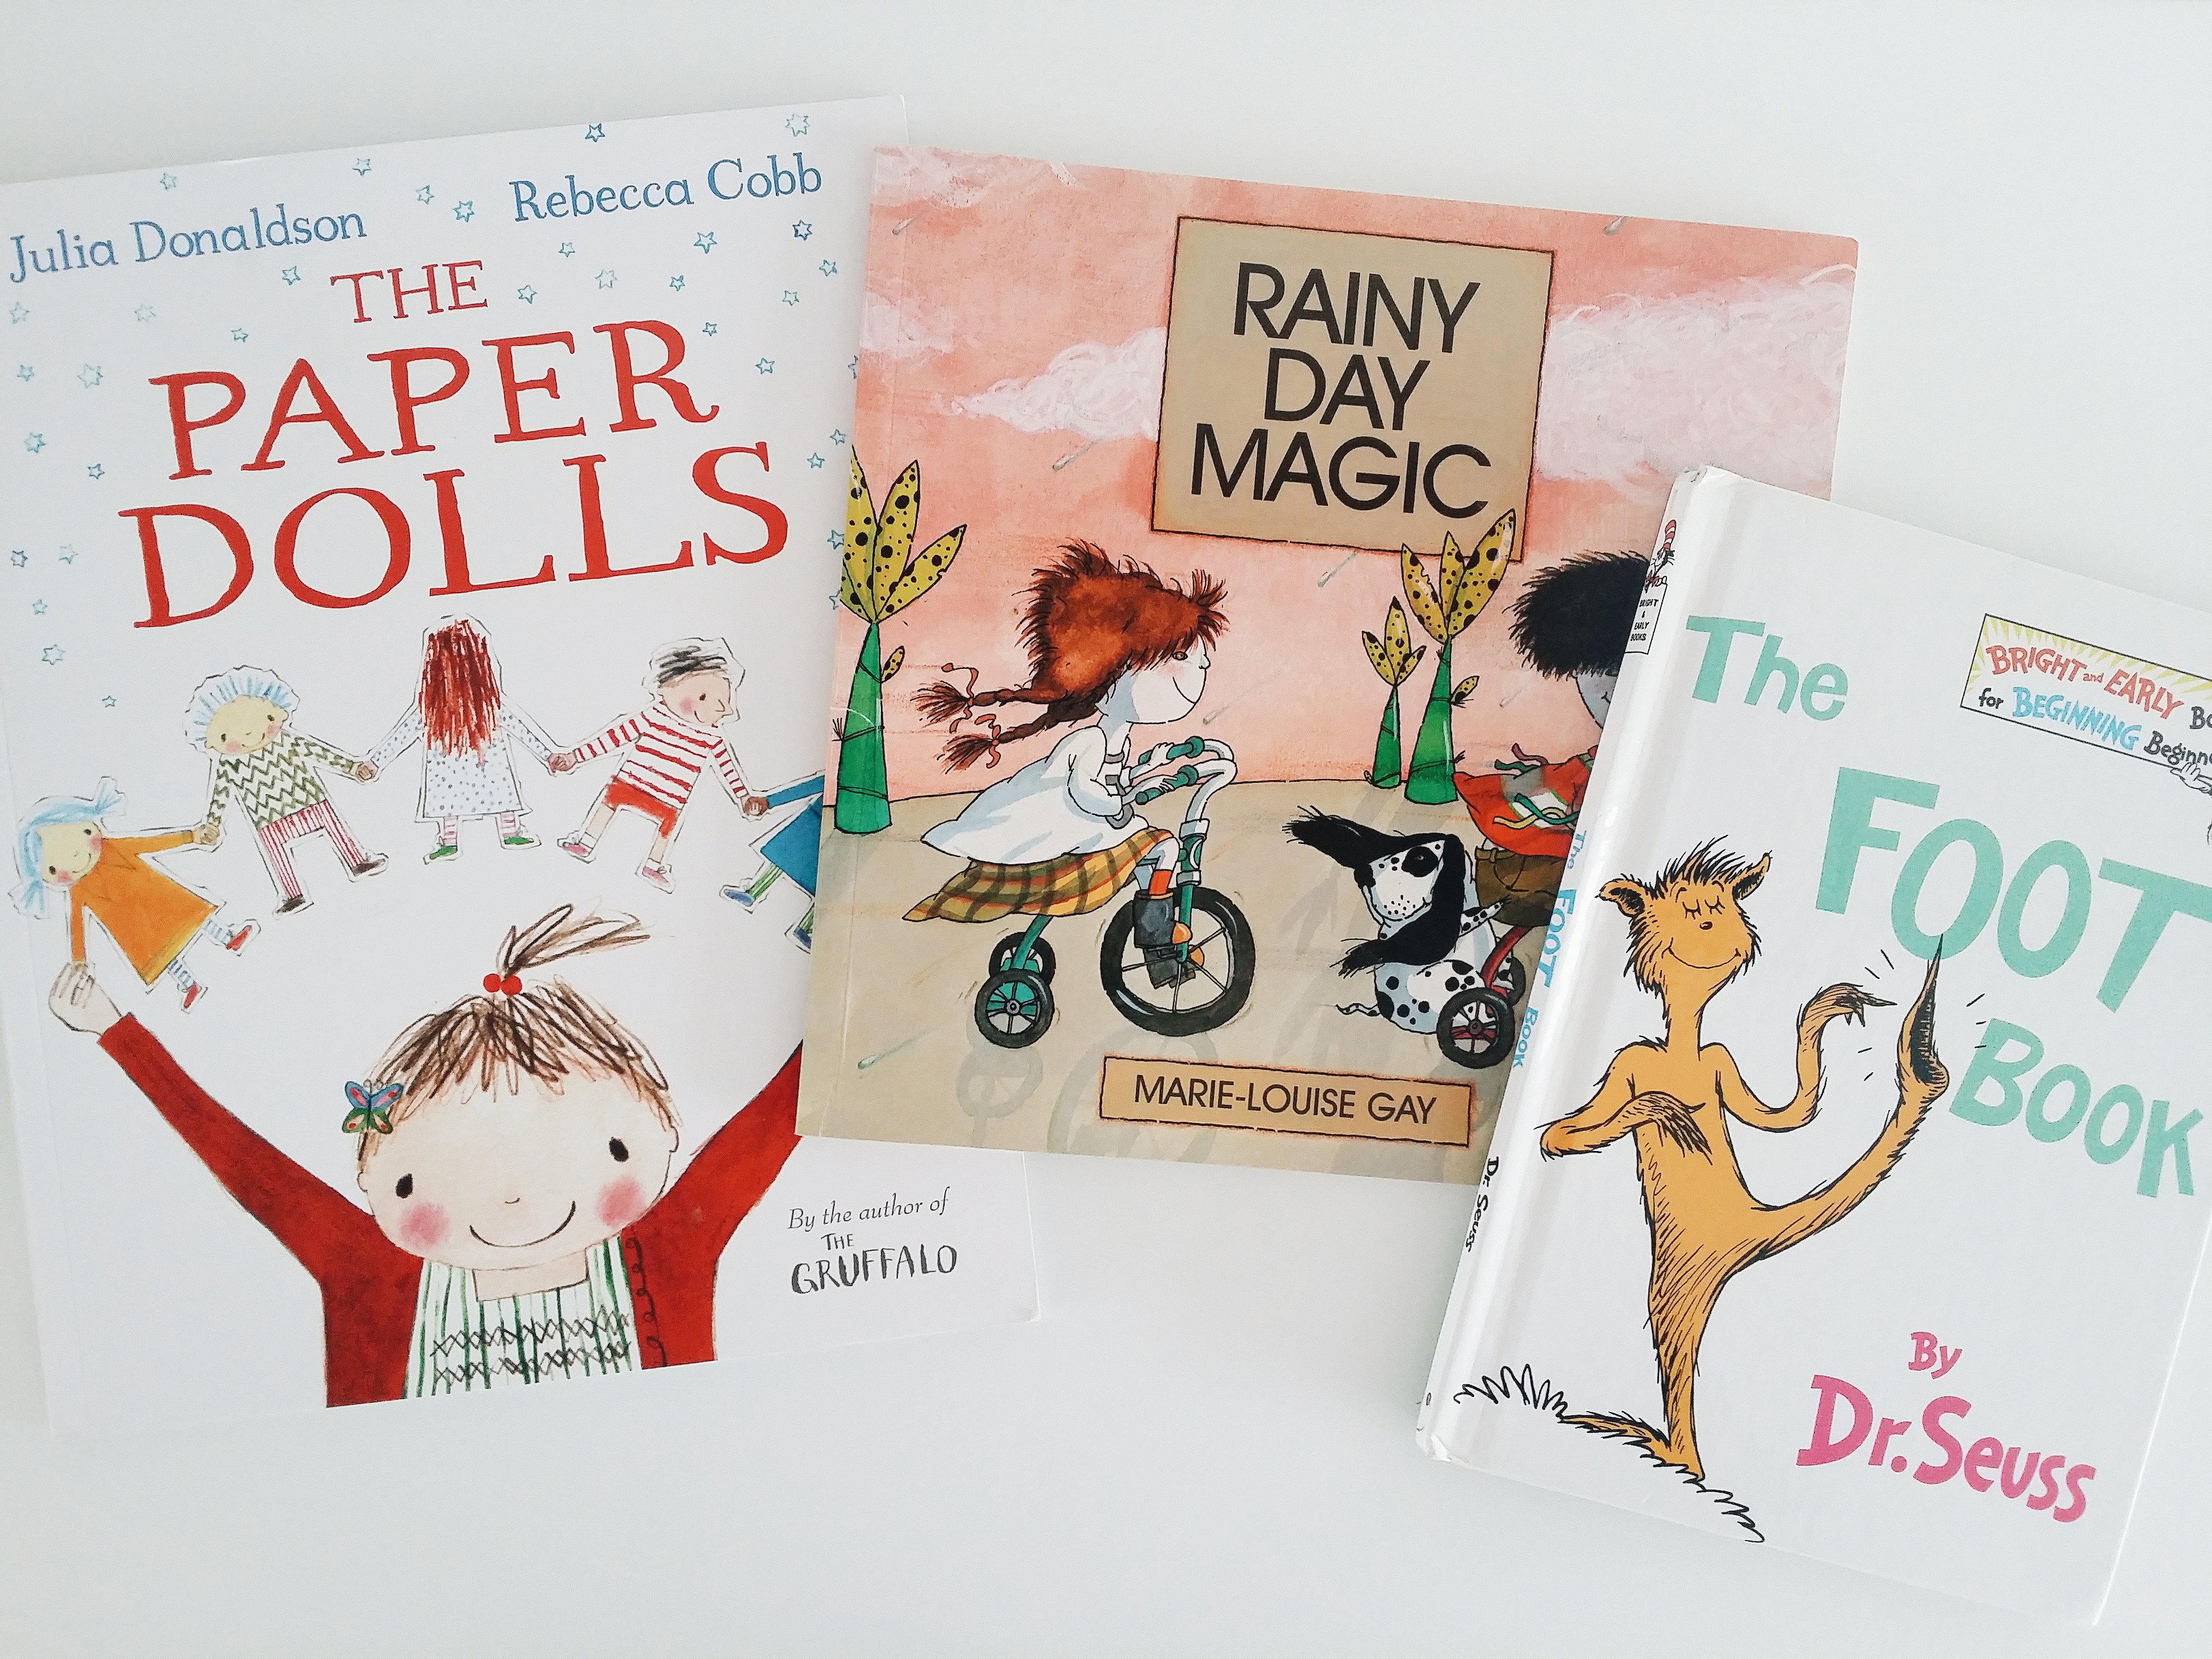 Our Six Absolute Favorite Picture Books - if we could only have 6 picture books in our house, these would be them.